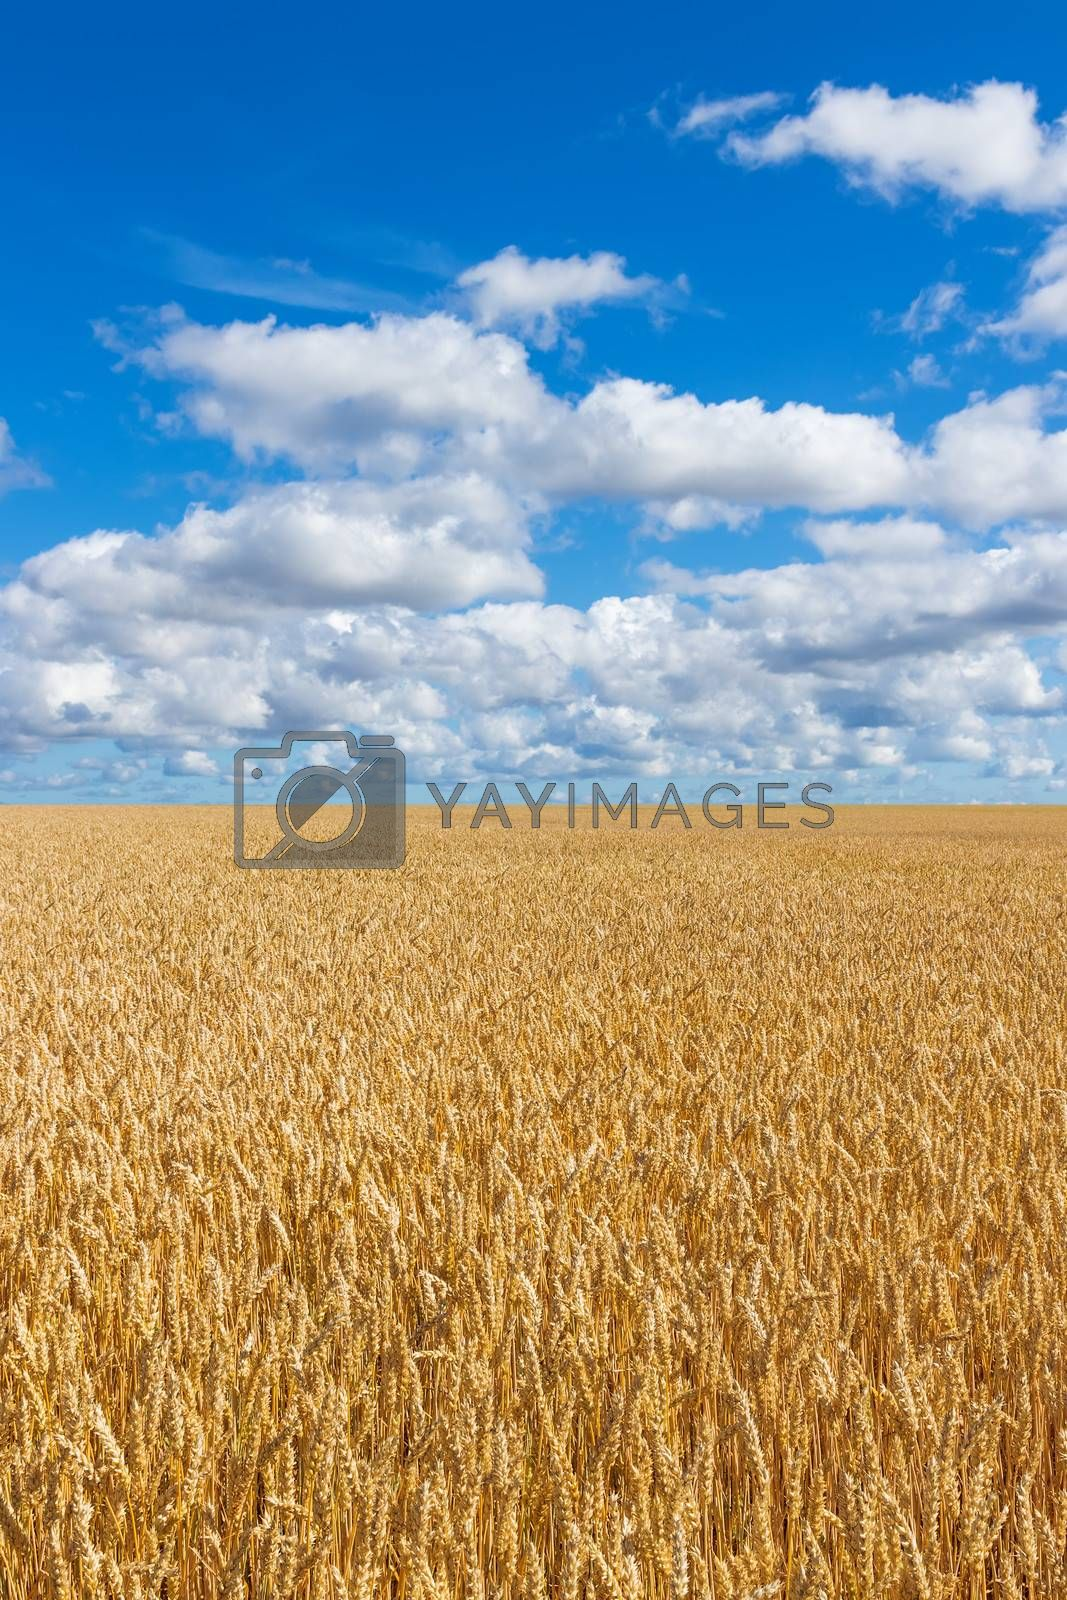 Rural landscape. Golden wheat field under blue sky with clouds.